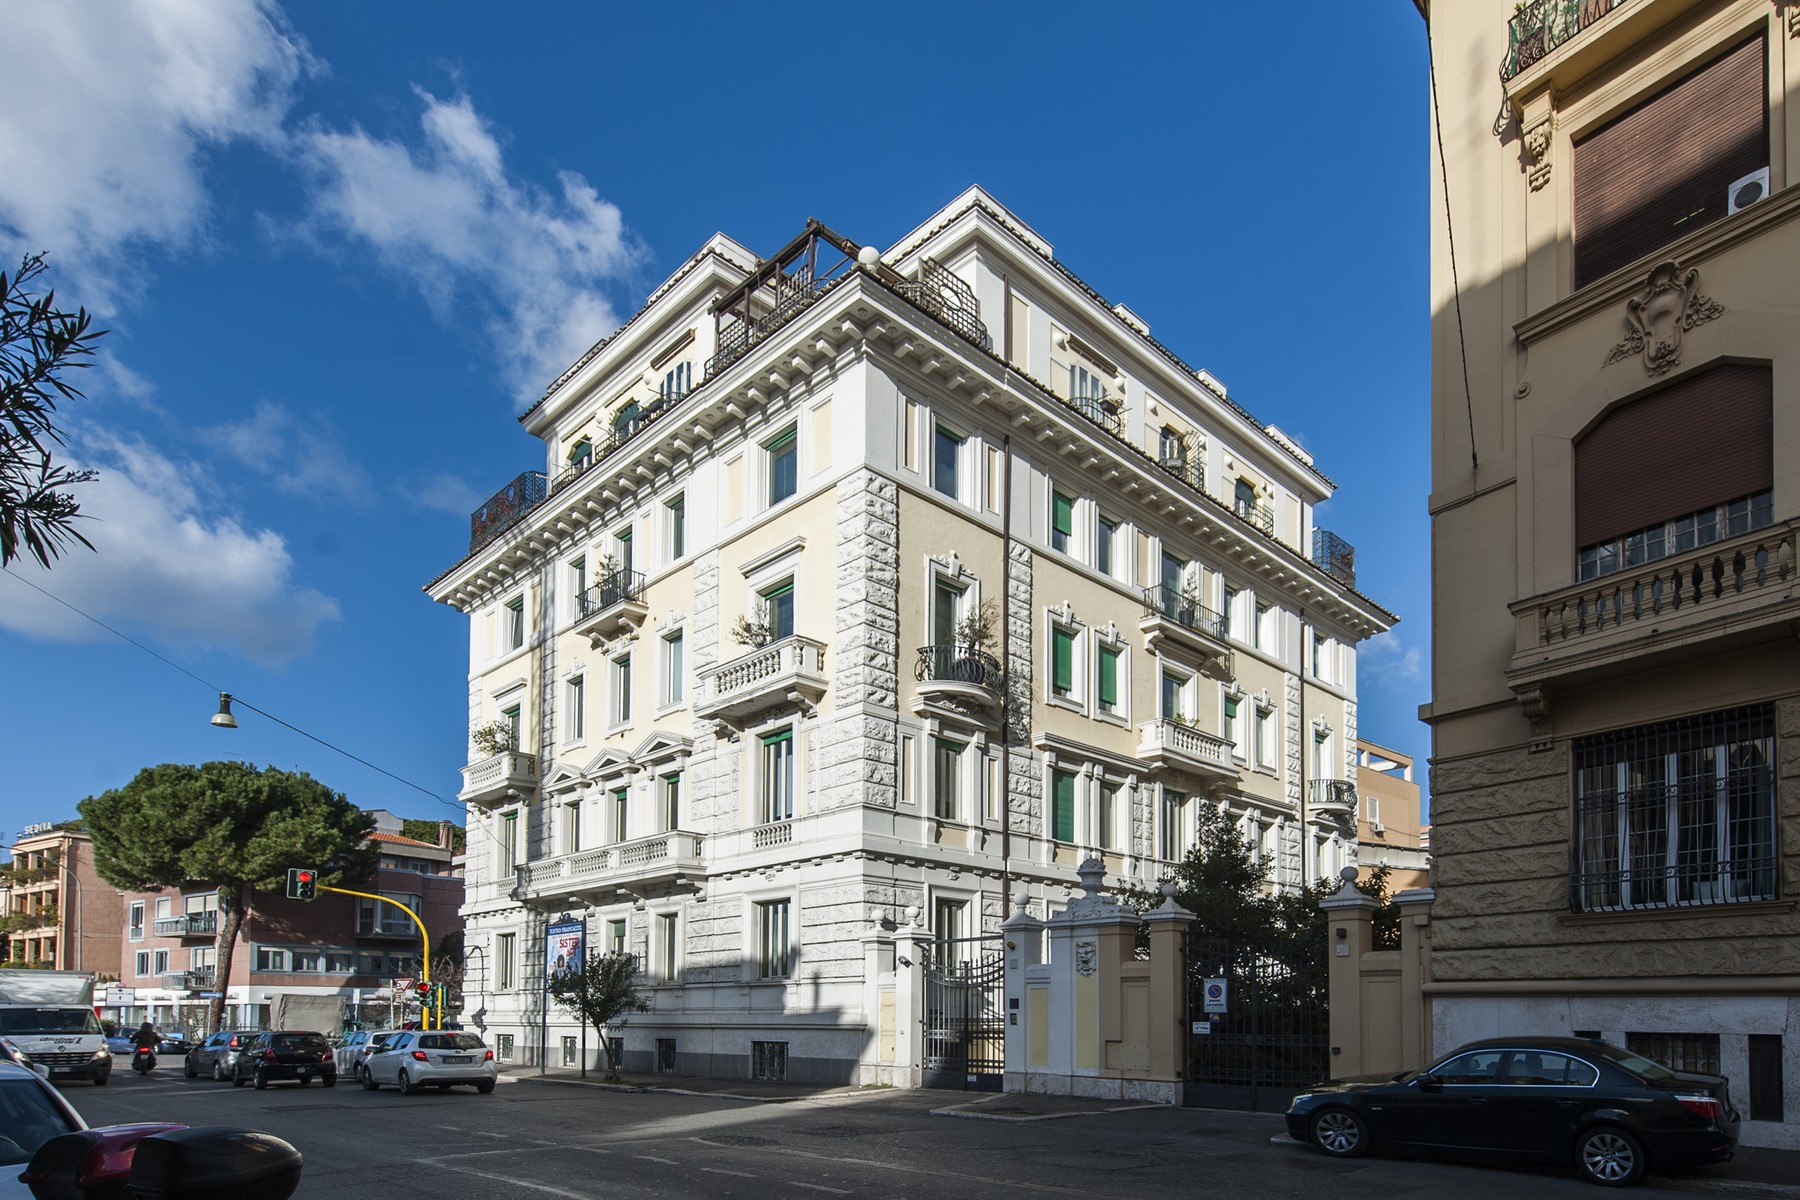 Additional photo for property listing at Uffici di alta rappresentanza ai Parioli Via Antonio Stoppani Rome, Roma 00197 Italia